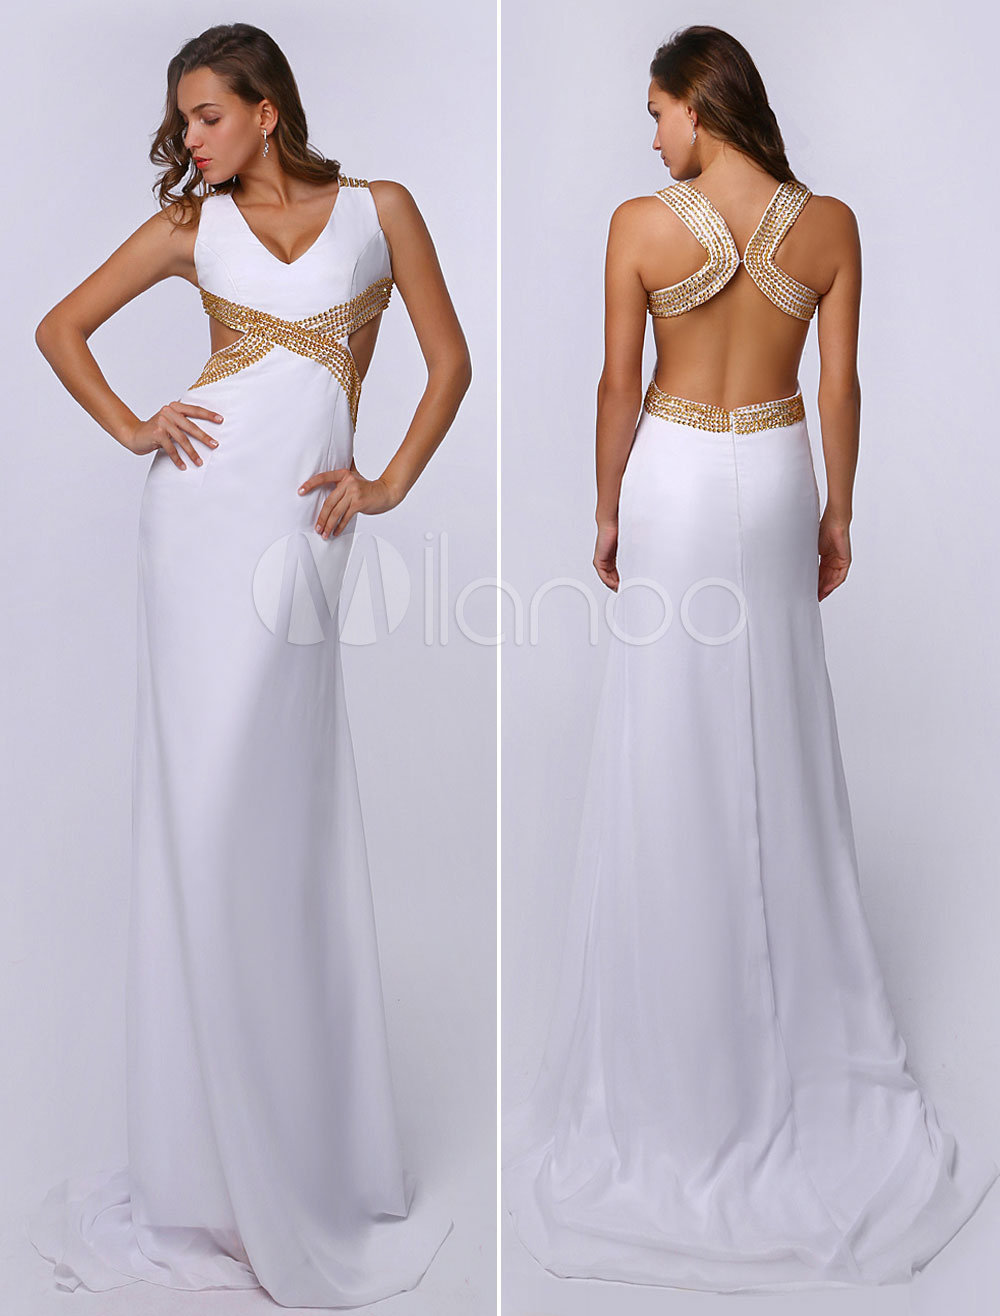 White Prom Dresses 2018 Long Backless Evening Dress Sheath Sequin V Neck Cutout Back Party Dress With Train (Wedding) photo